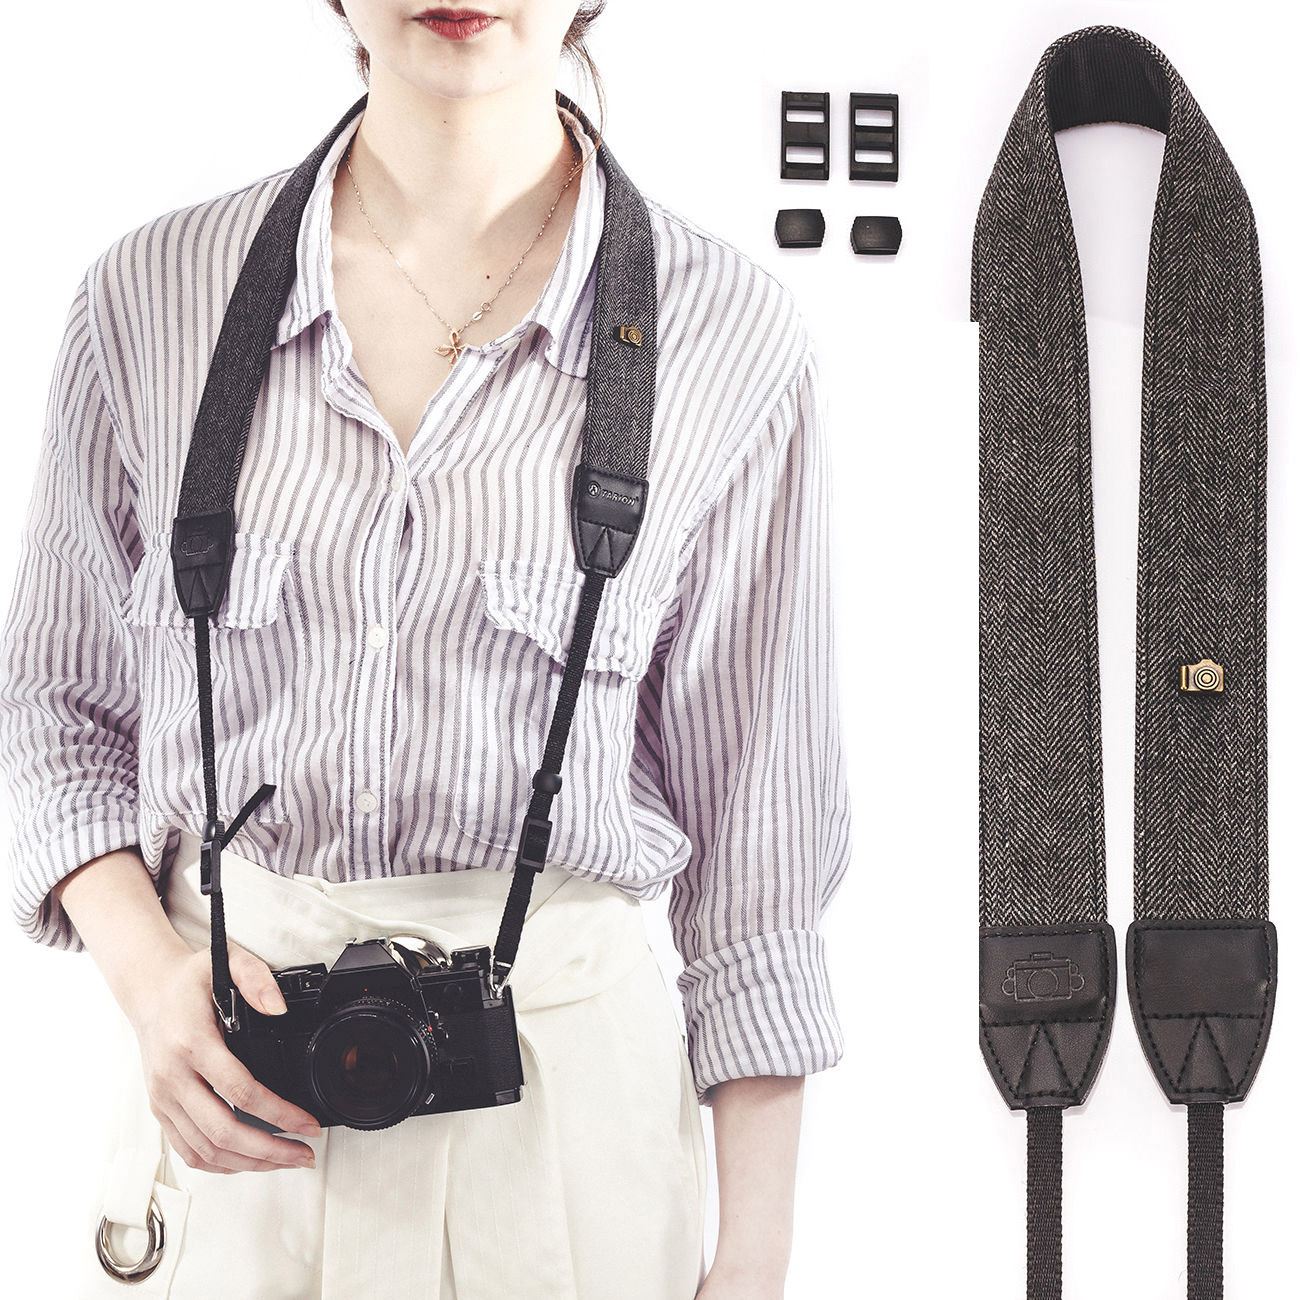 New Universal Camera Shoulder Neck Belt Strap For SLR DSLR Digital For Sony Nikon Canon Olympus Camera Lens Strap High Quality